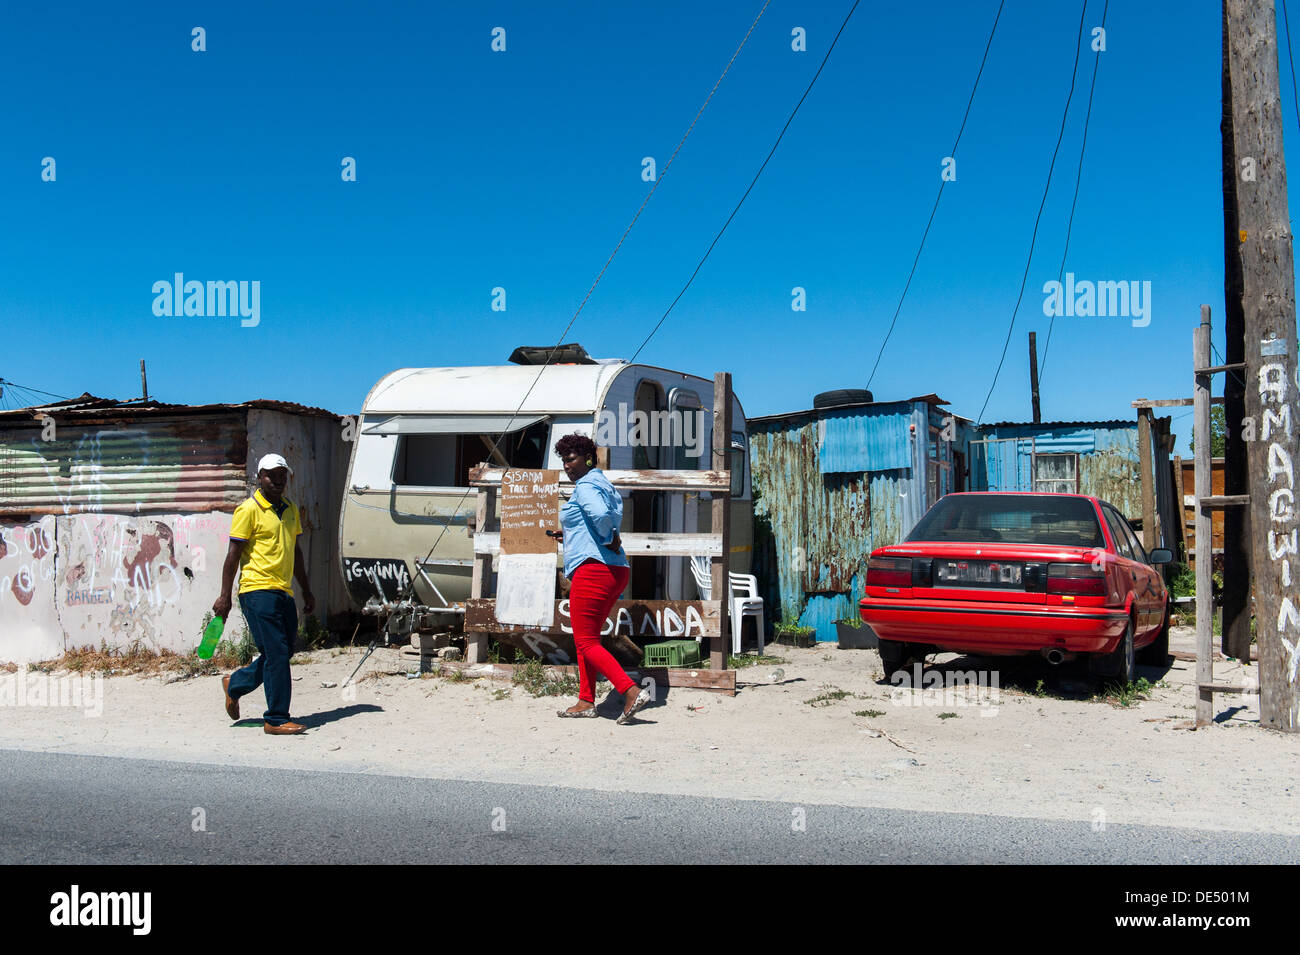 Man and woman walking along a street in Khayelitsha,  parked car and caravan in the background, Cape Town, South Africa - Stock Image